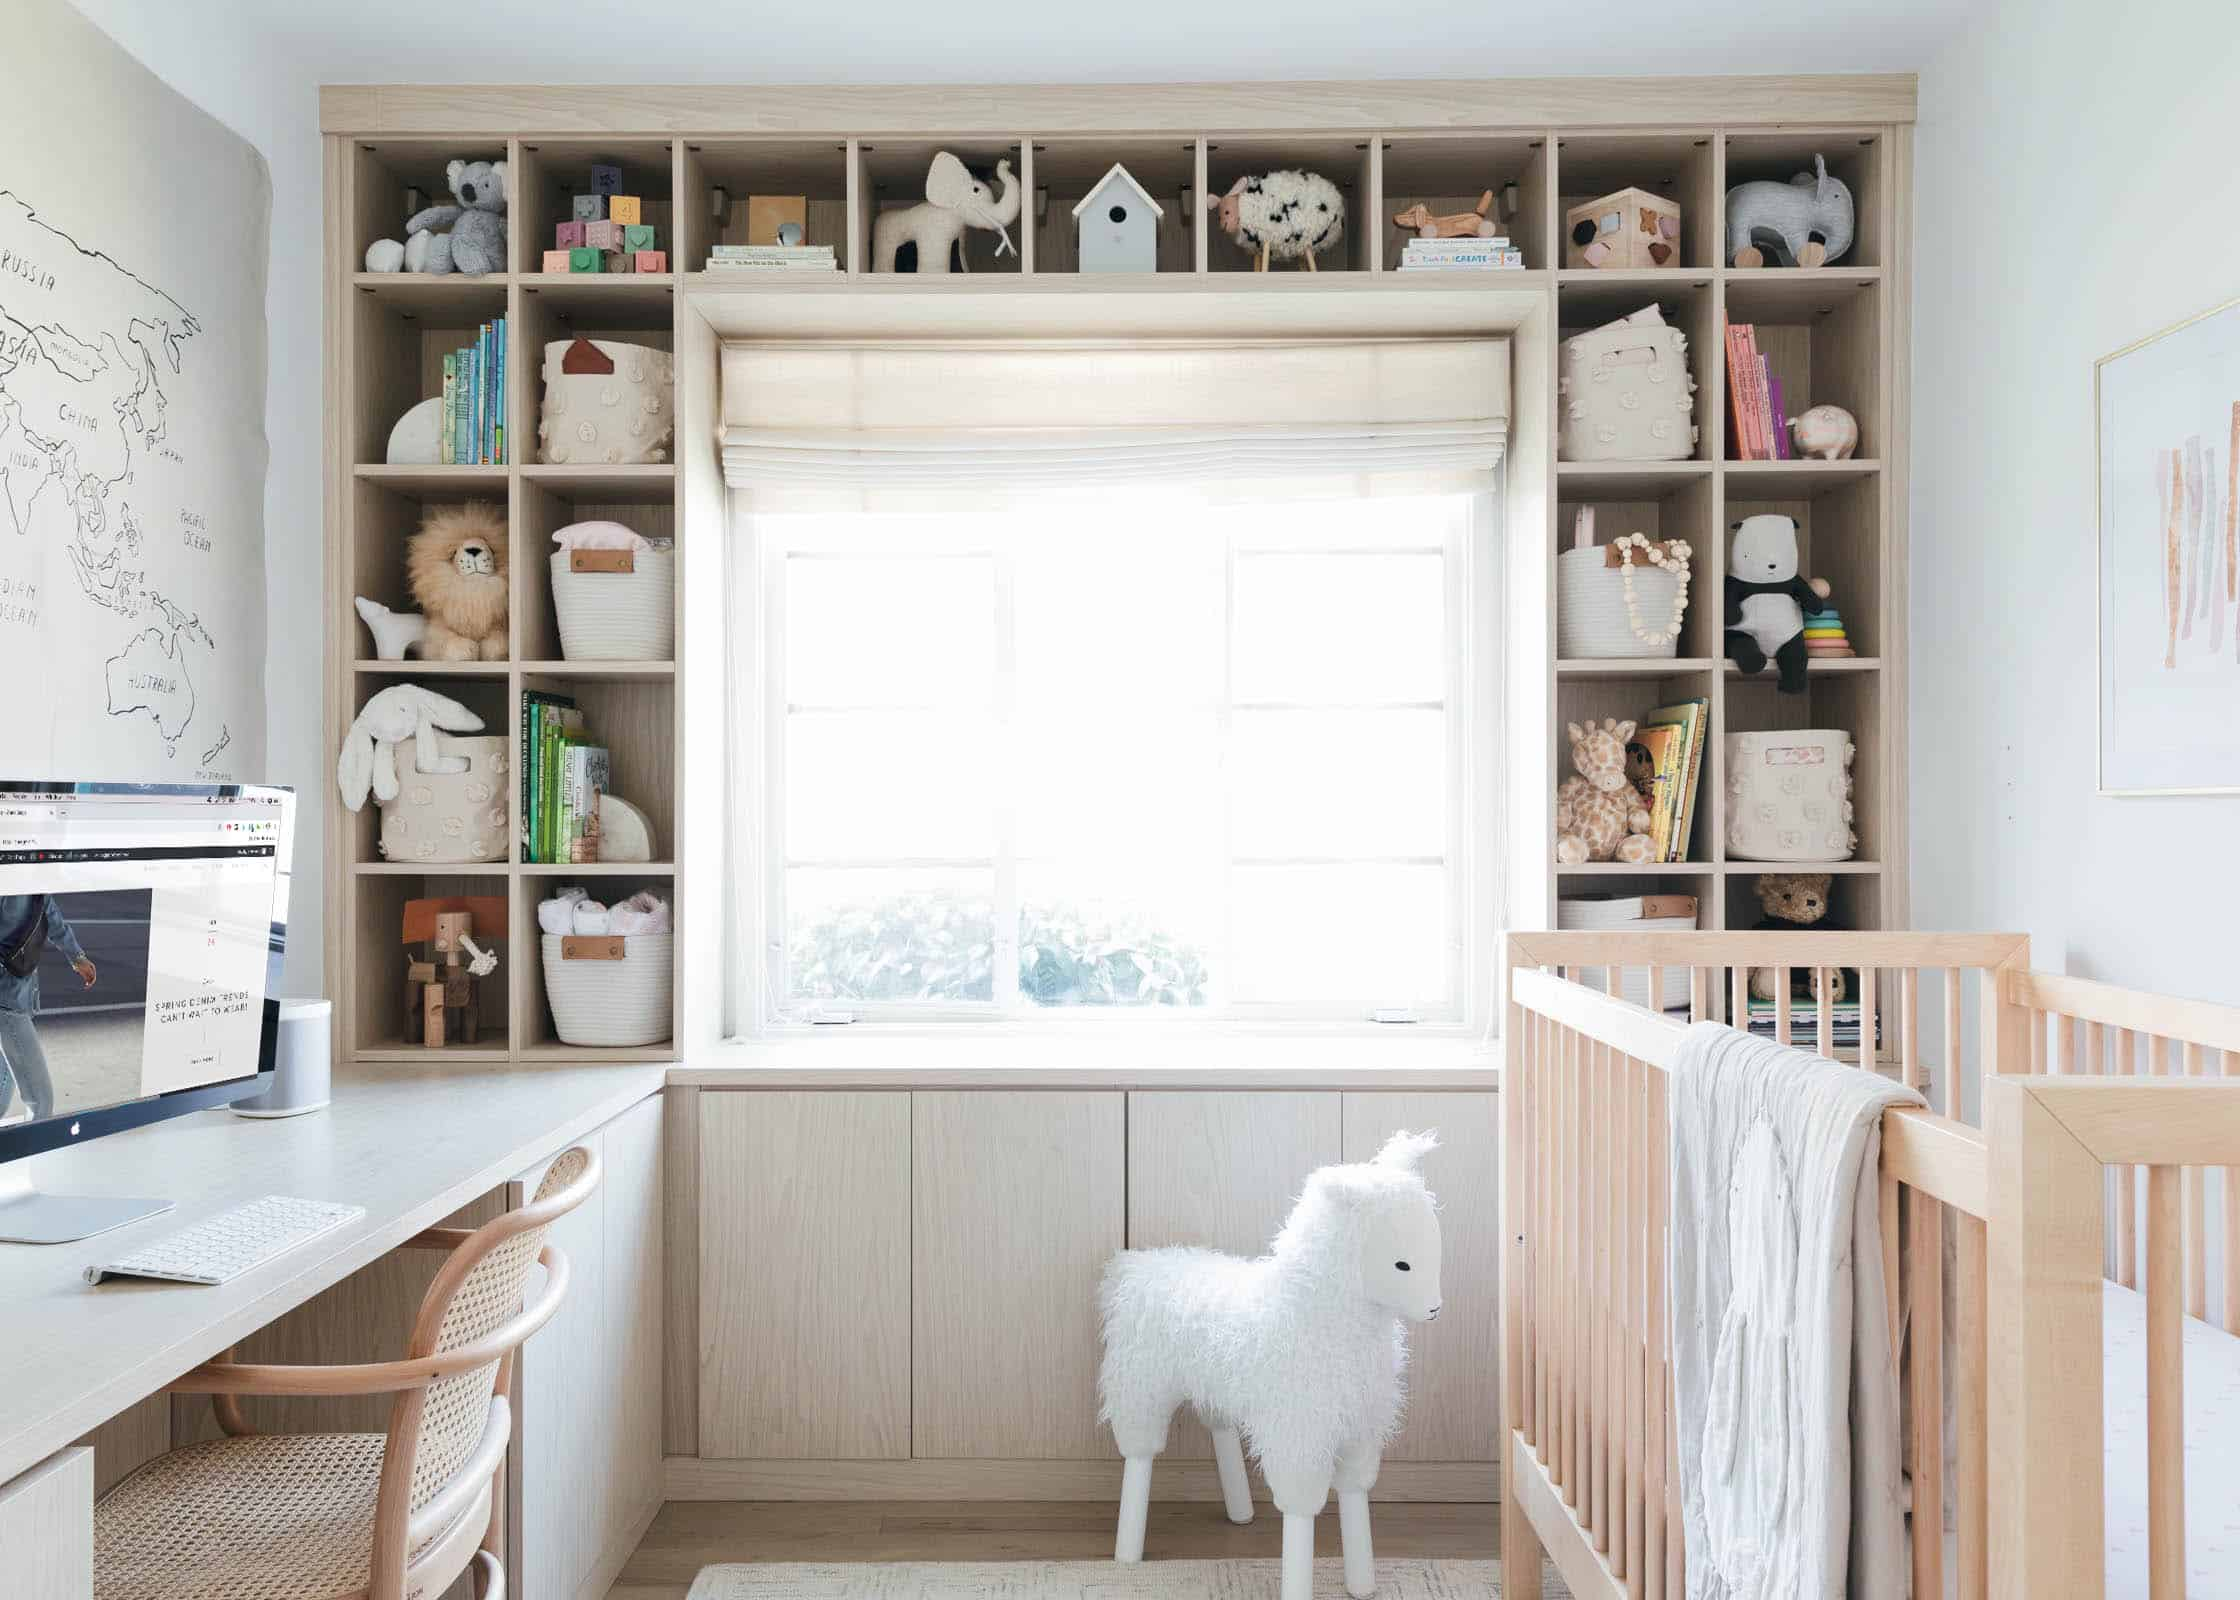 No Nursery? No Problem: 8 Creative Tips To Make Space For Your New Baby (+ A STYLIST